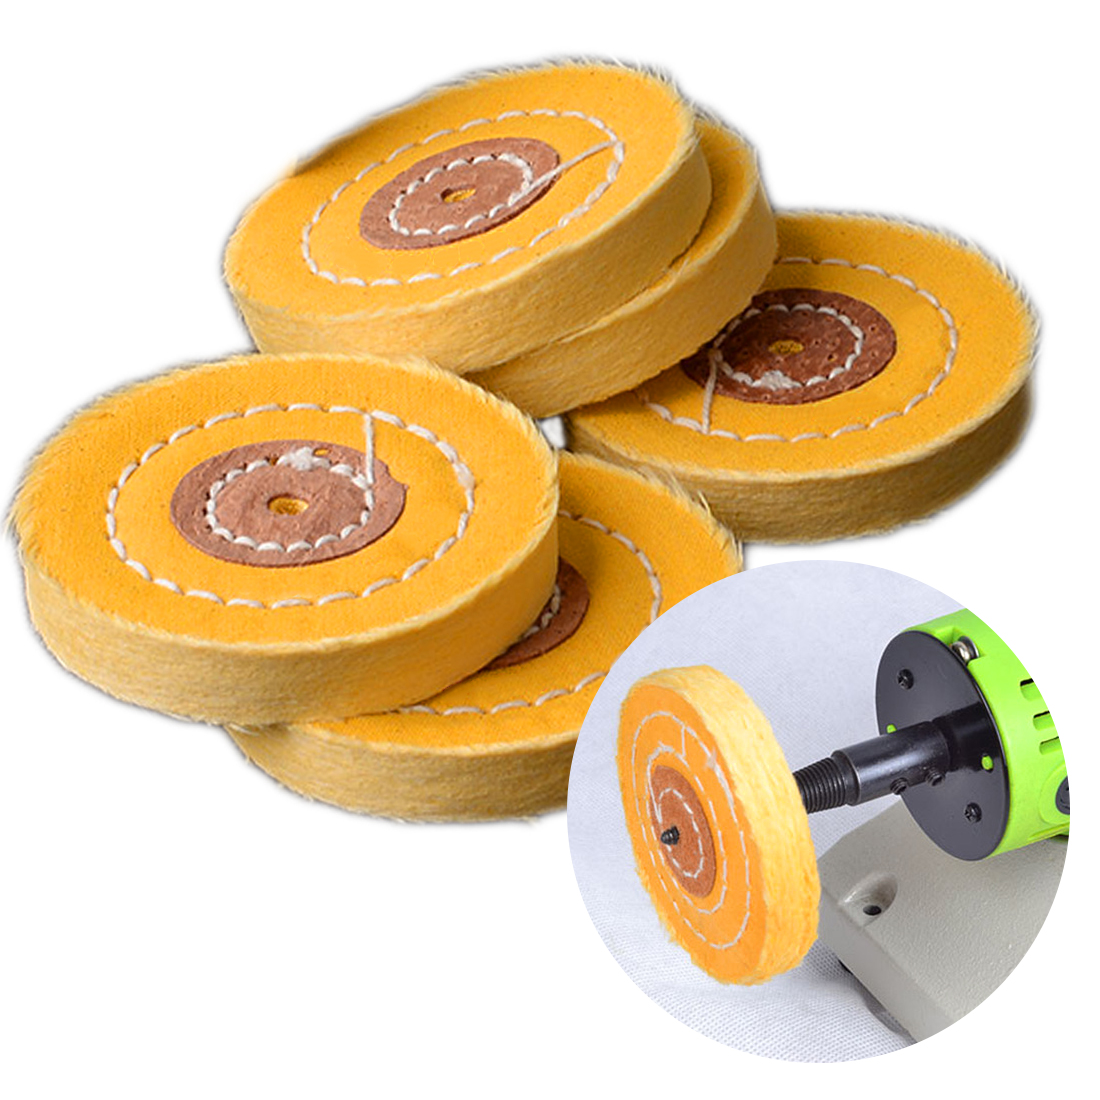 1pc 50-300mm Cotton Lint Cloth Buffing Wheel Gold Silver Jewelry Mirror Hardware Polishing Wheel Tool 4mm Inner Diameter